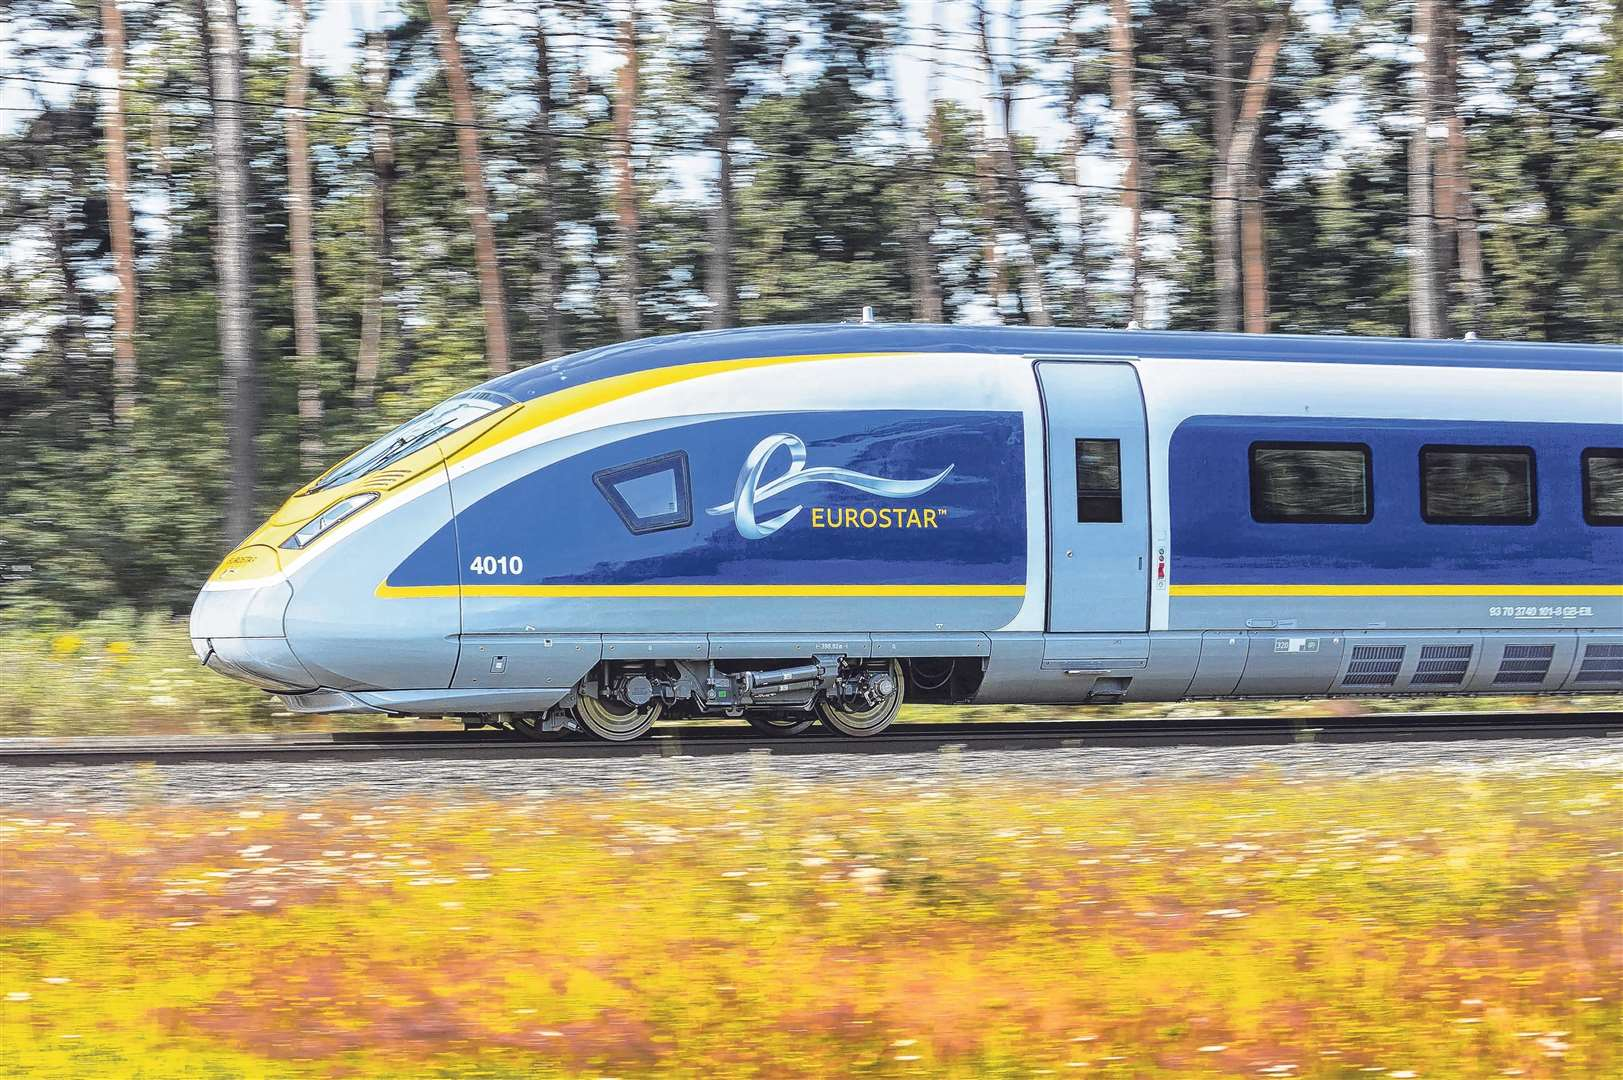 A Eurostar train. Library image.